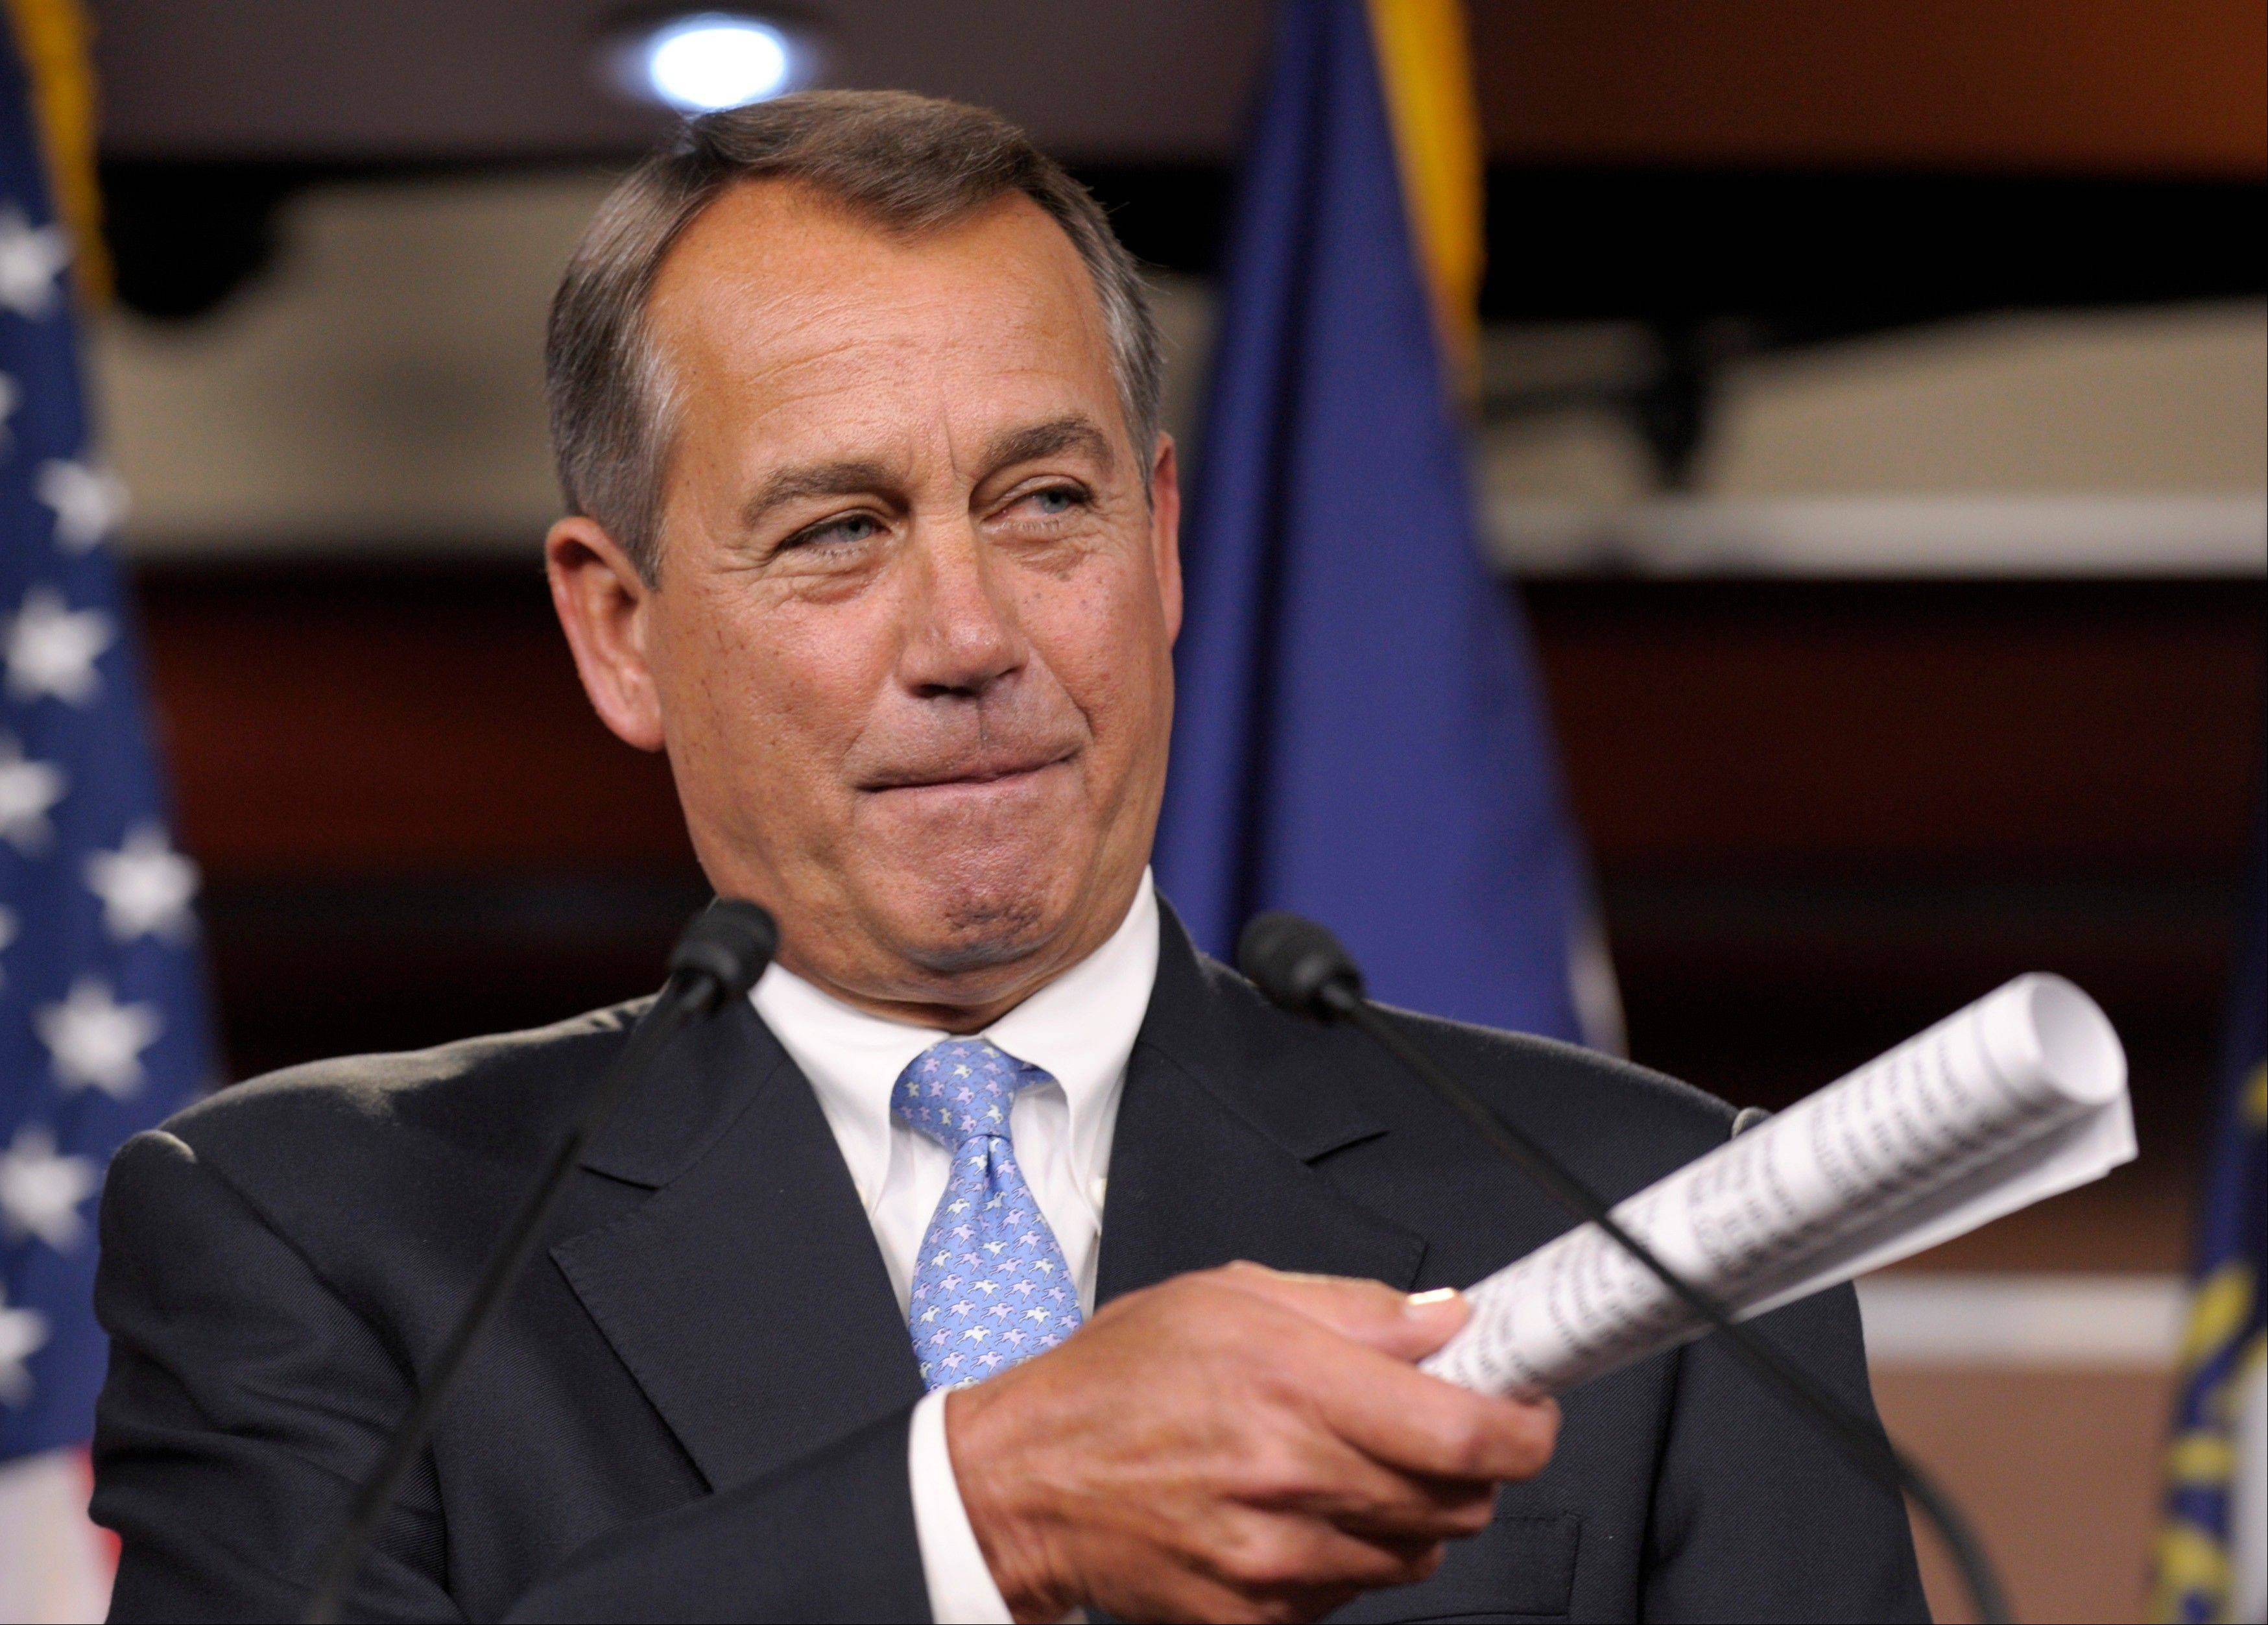 House Speaker John Boehner of Ohio gesturing during a news conference on Capitol Hill in Washington. It�s entirely possible that lawmakers and the White House will reach a deal to avert an avalanche of tax increases and deep cuts in government programs before a Jan. 1 deadline.